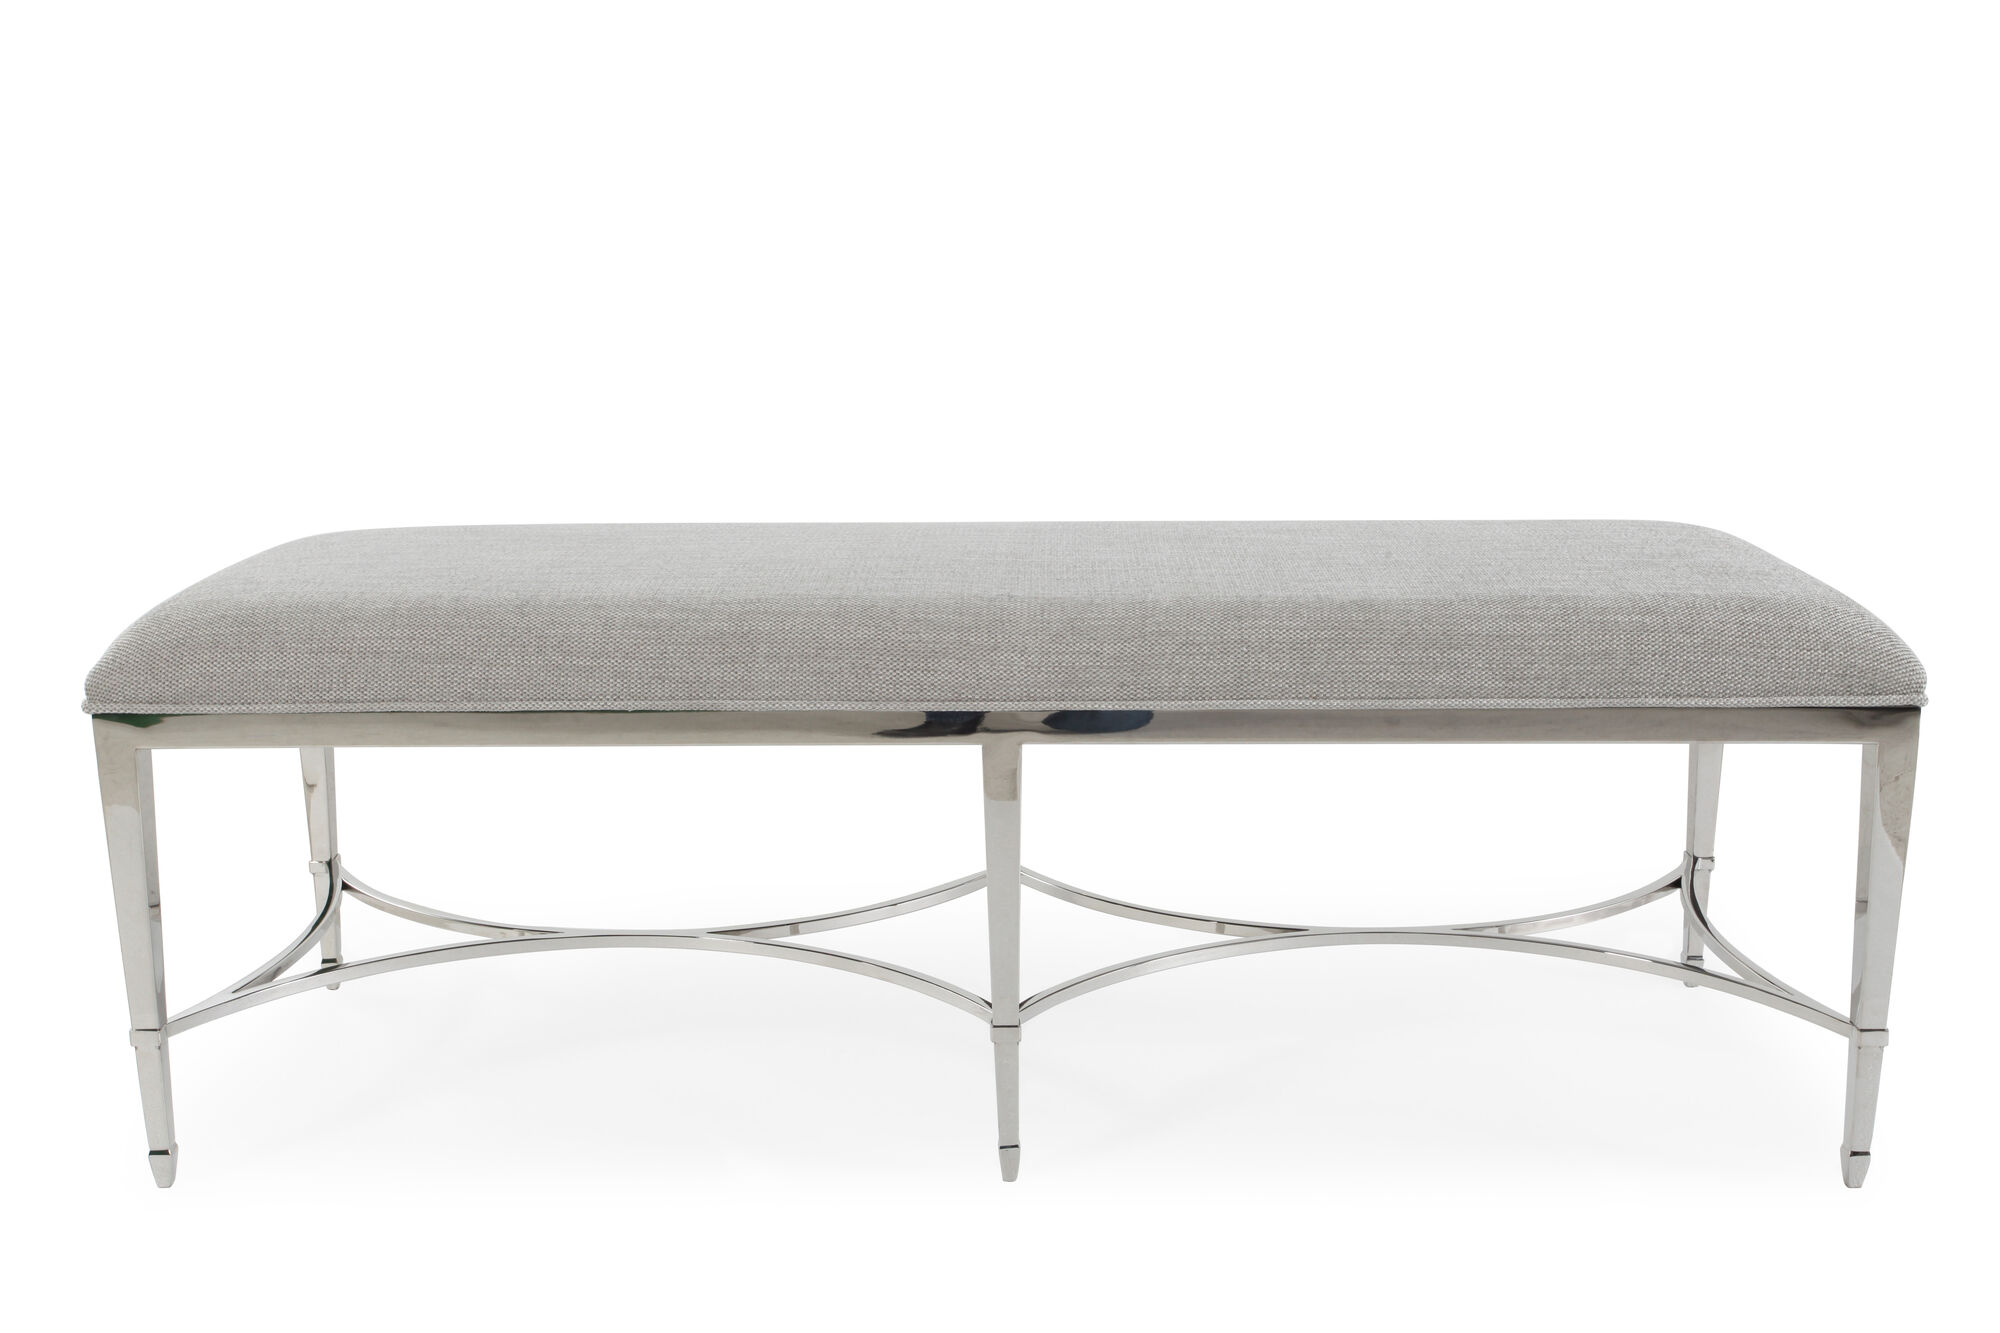 56 Quot Steel Bench In Gray Mathis Brothers Furniture